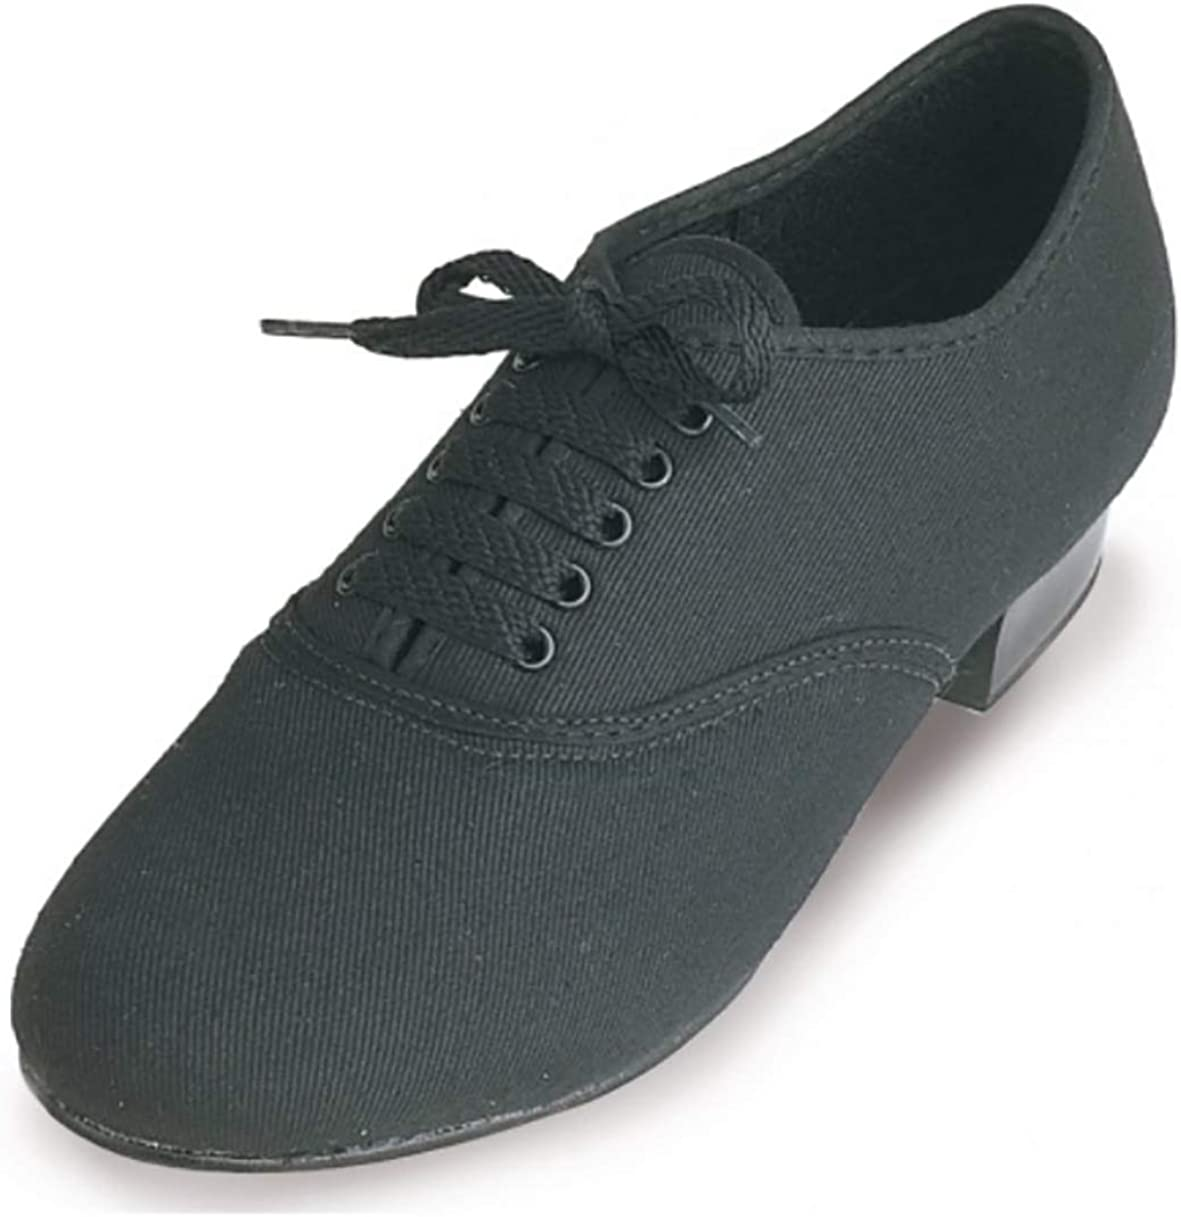 Roch Valley Boys Canvas Tap Shoes